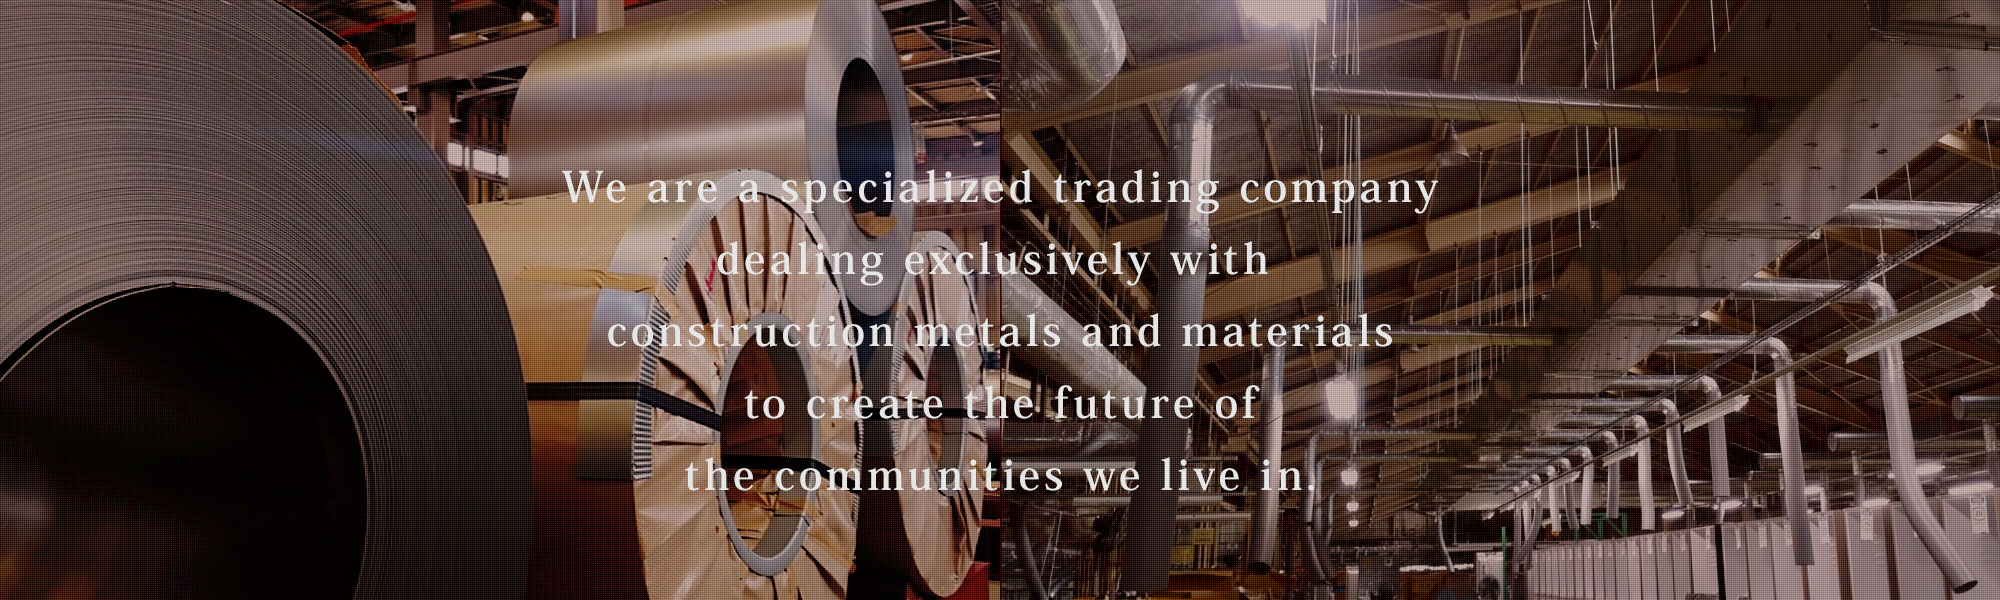 We are a specialized trading company dealing exclusively with construction metals and materials to create the future of the communities we live in.